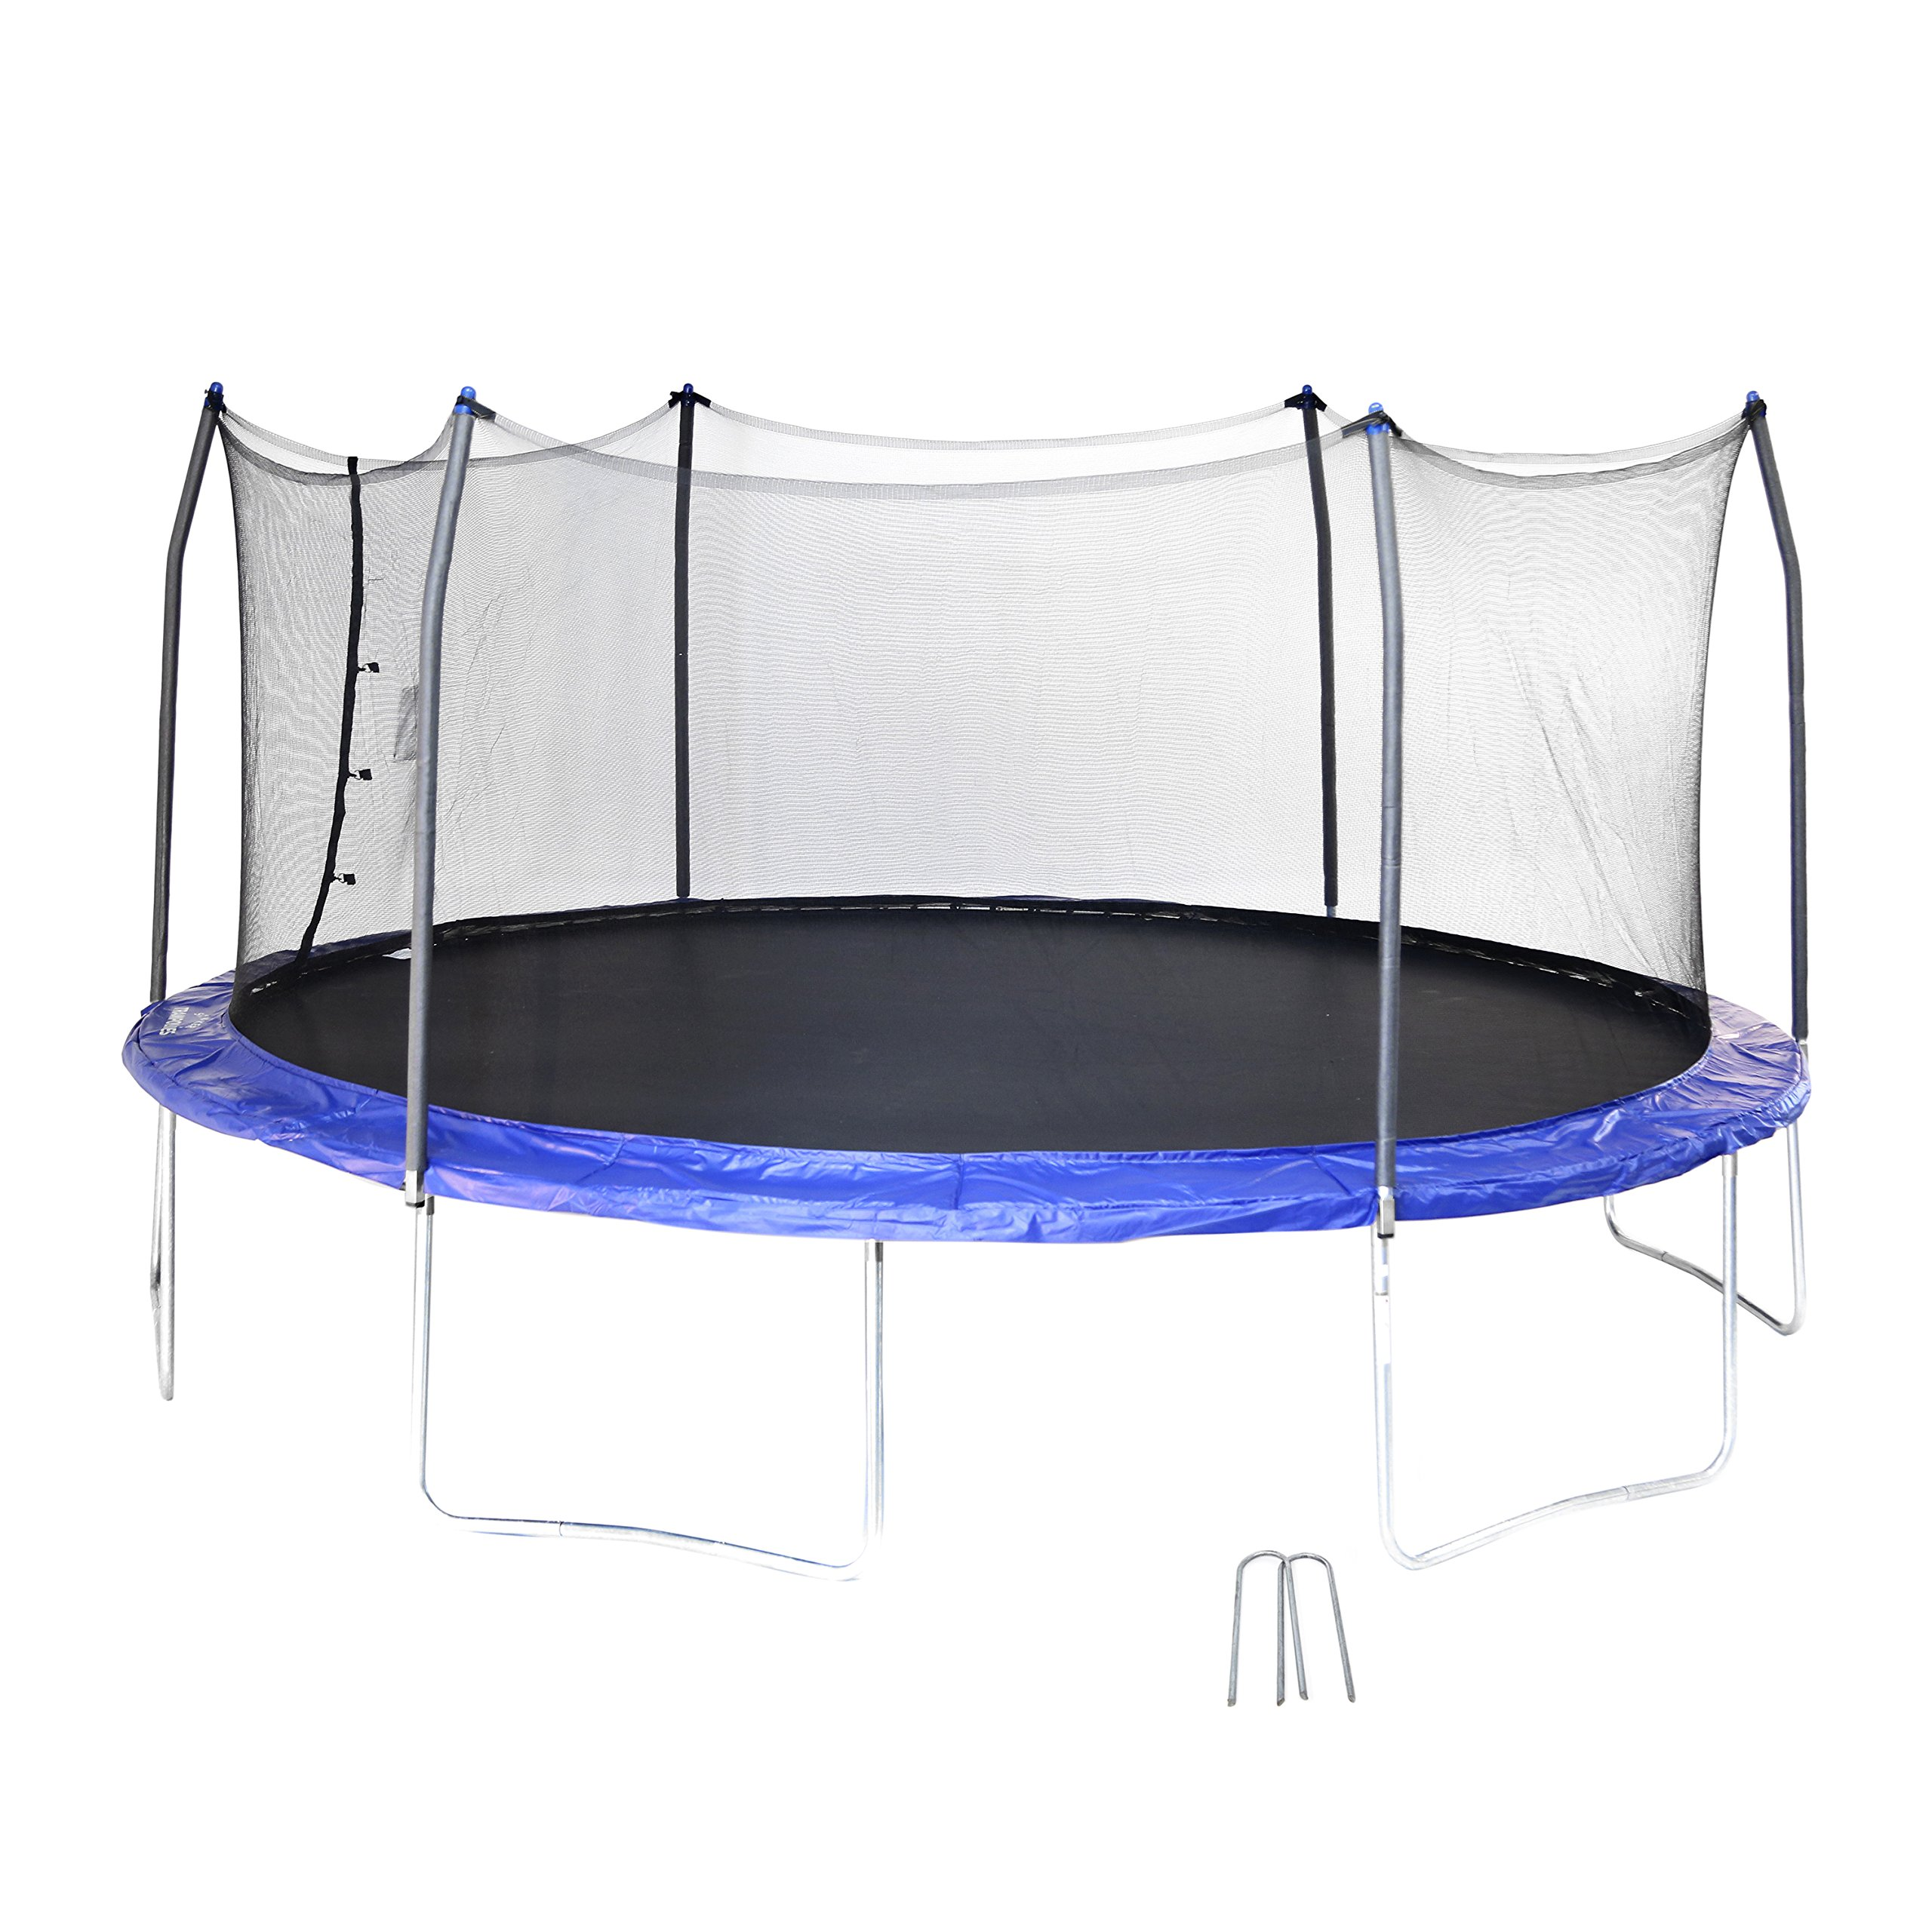 Skywalker SWTC17BWS Oval Trampoline and Enclosure with Wind Stakes (17-Feet) by Skywalker